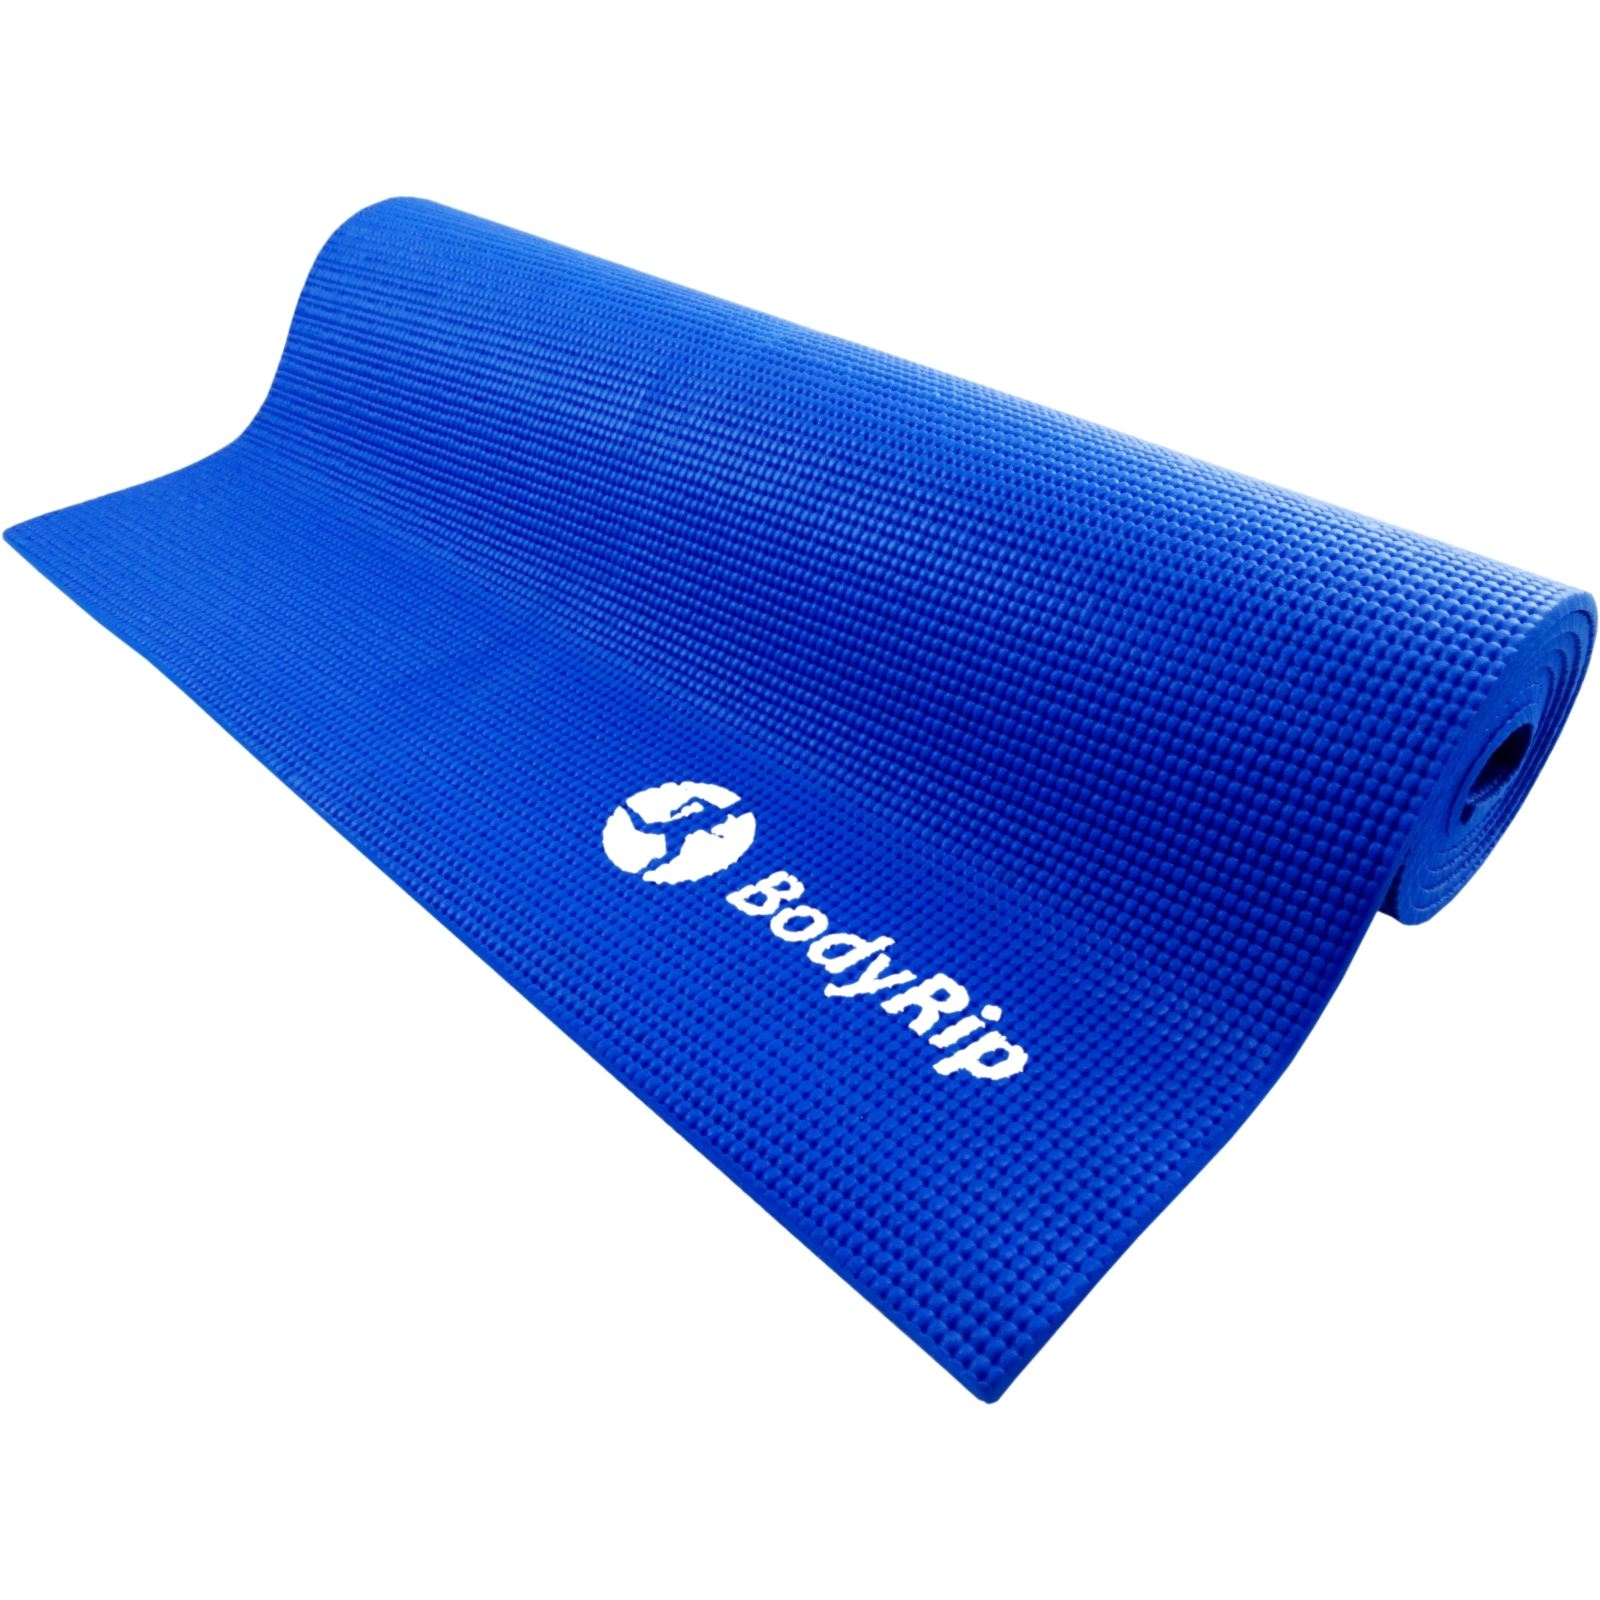 BODYRIP THICK FOAM YOGA PILATES GYM MAT 6mm THE MORE YOU